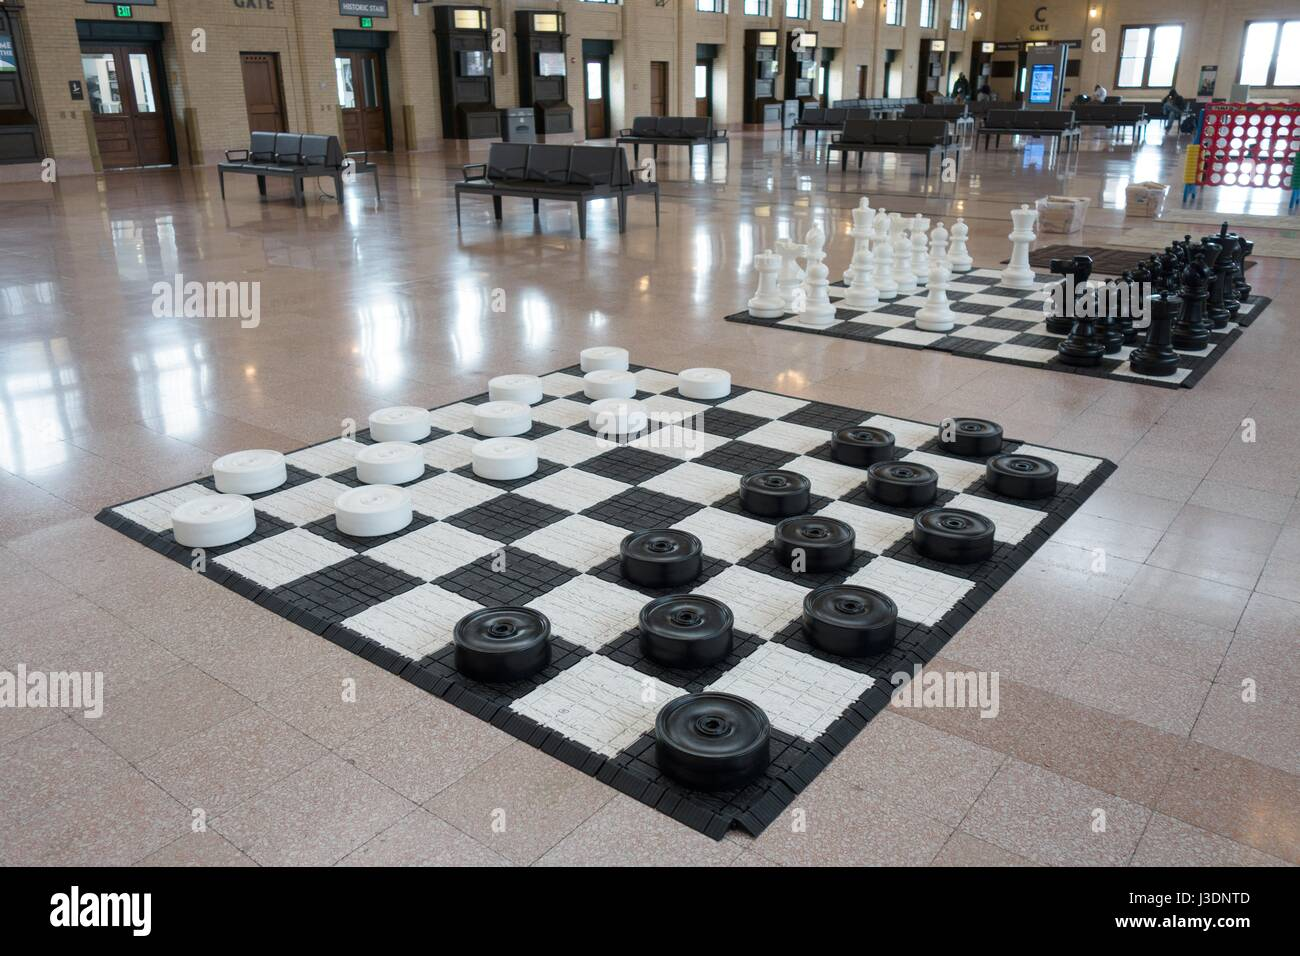 Giant checkers and chess games at Union Depot Station in St. Paul, Minnesota, USA. Stock Photo